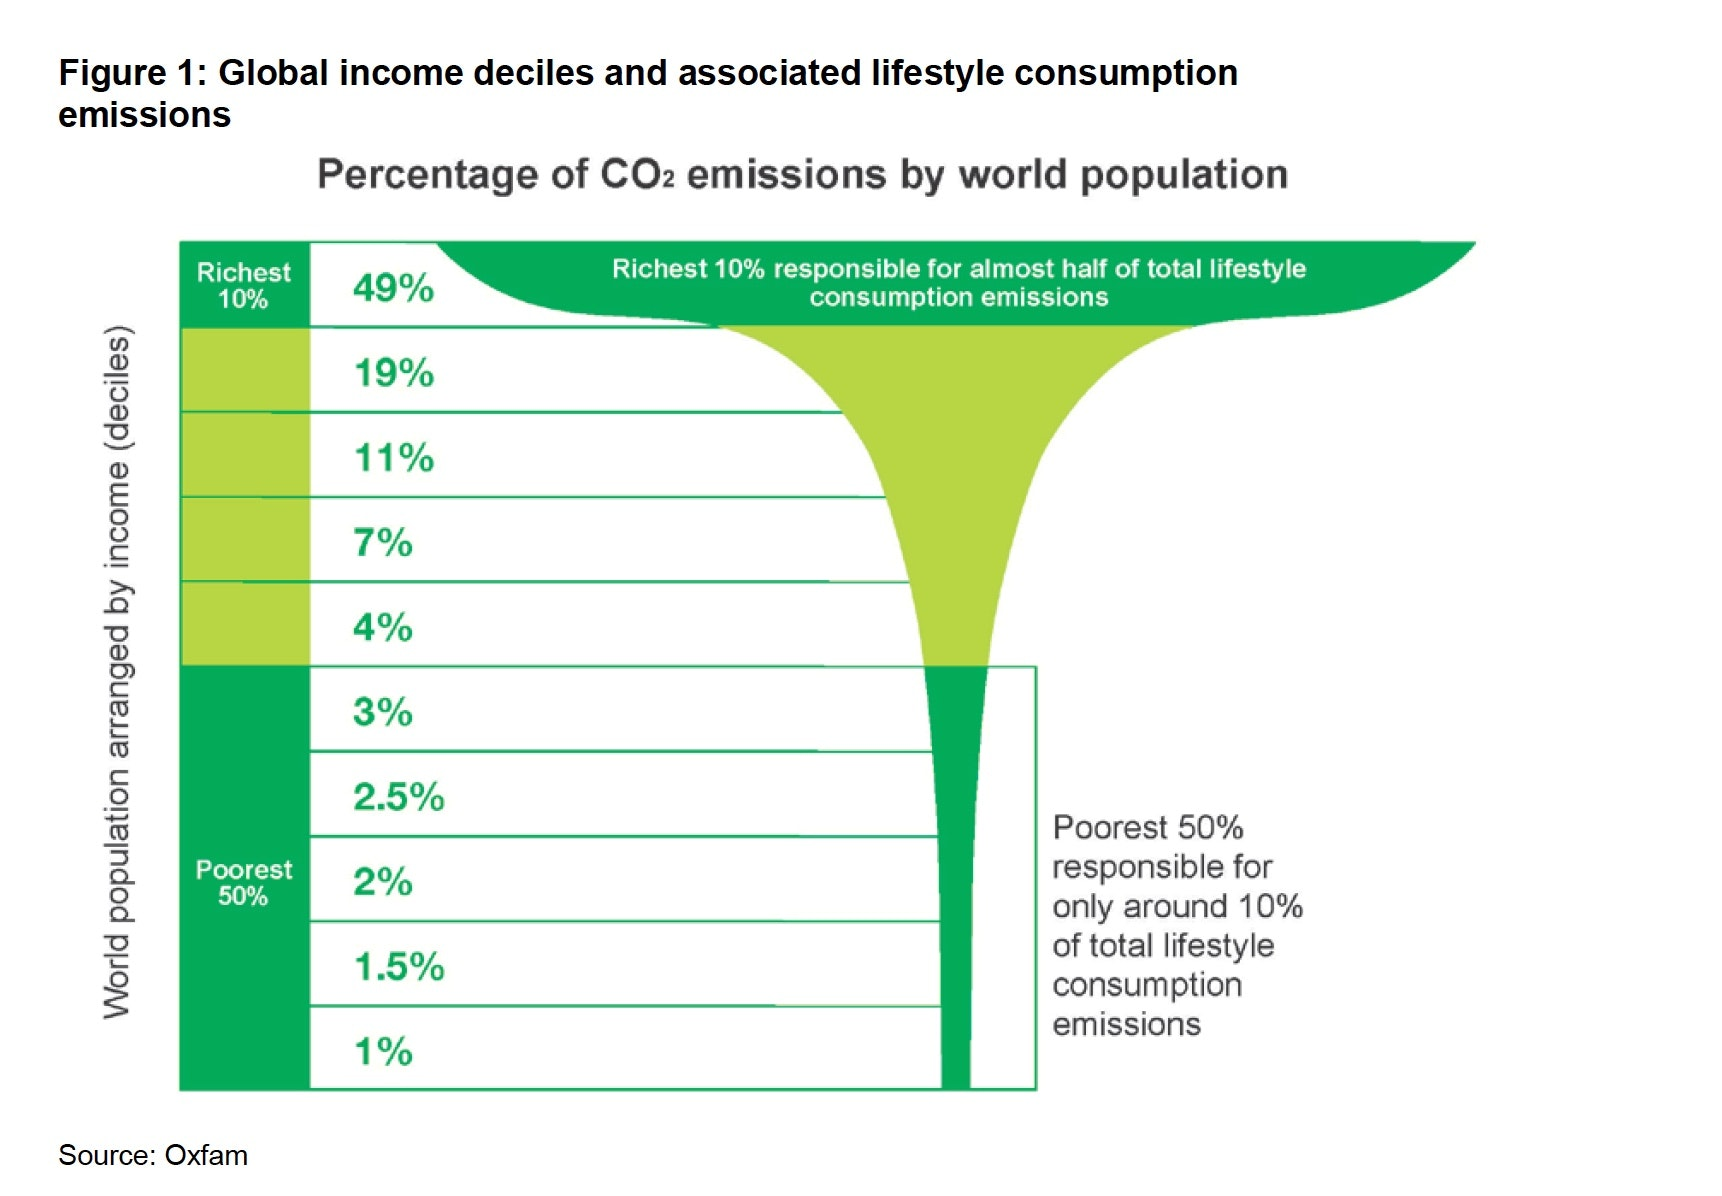 Richest 10% responsible for almost 1/2 of total lifestyle consumption emissions. Poorest 50% responsible for only around 10% of total lifestyle consumption emissions.